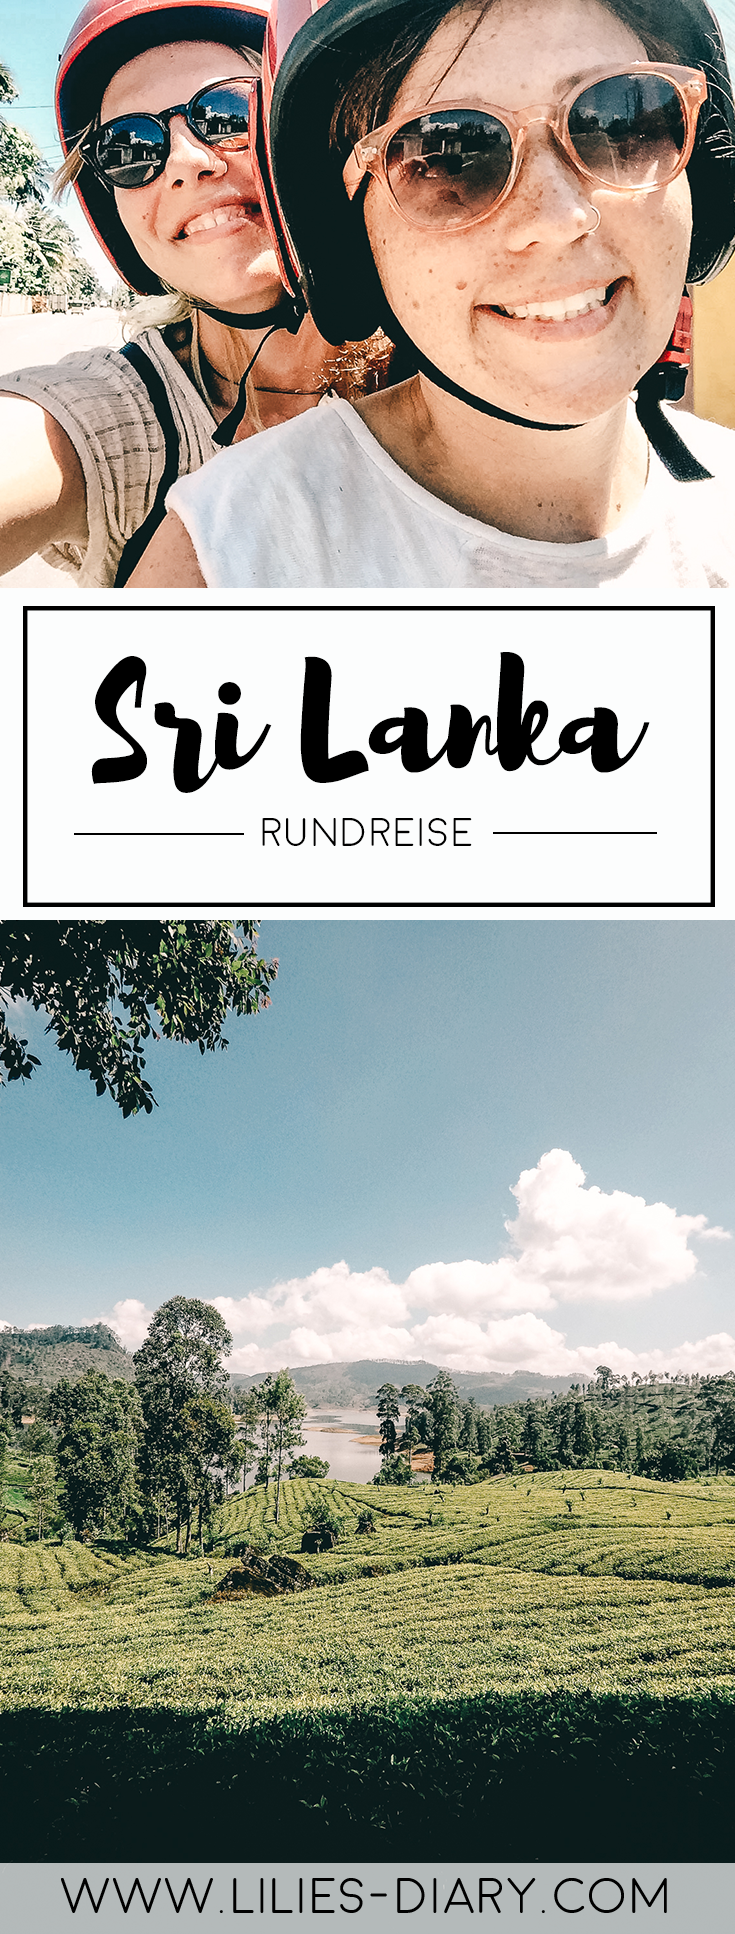 Sri Lanka Rundreise